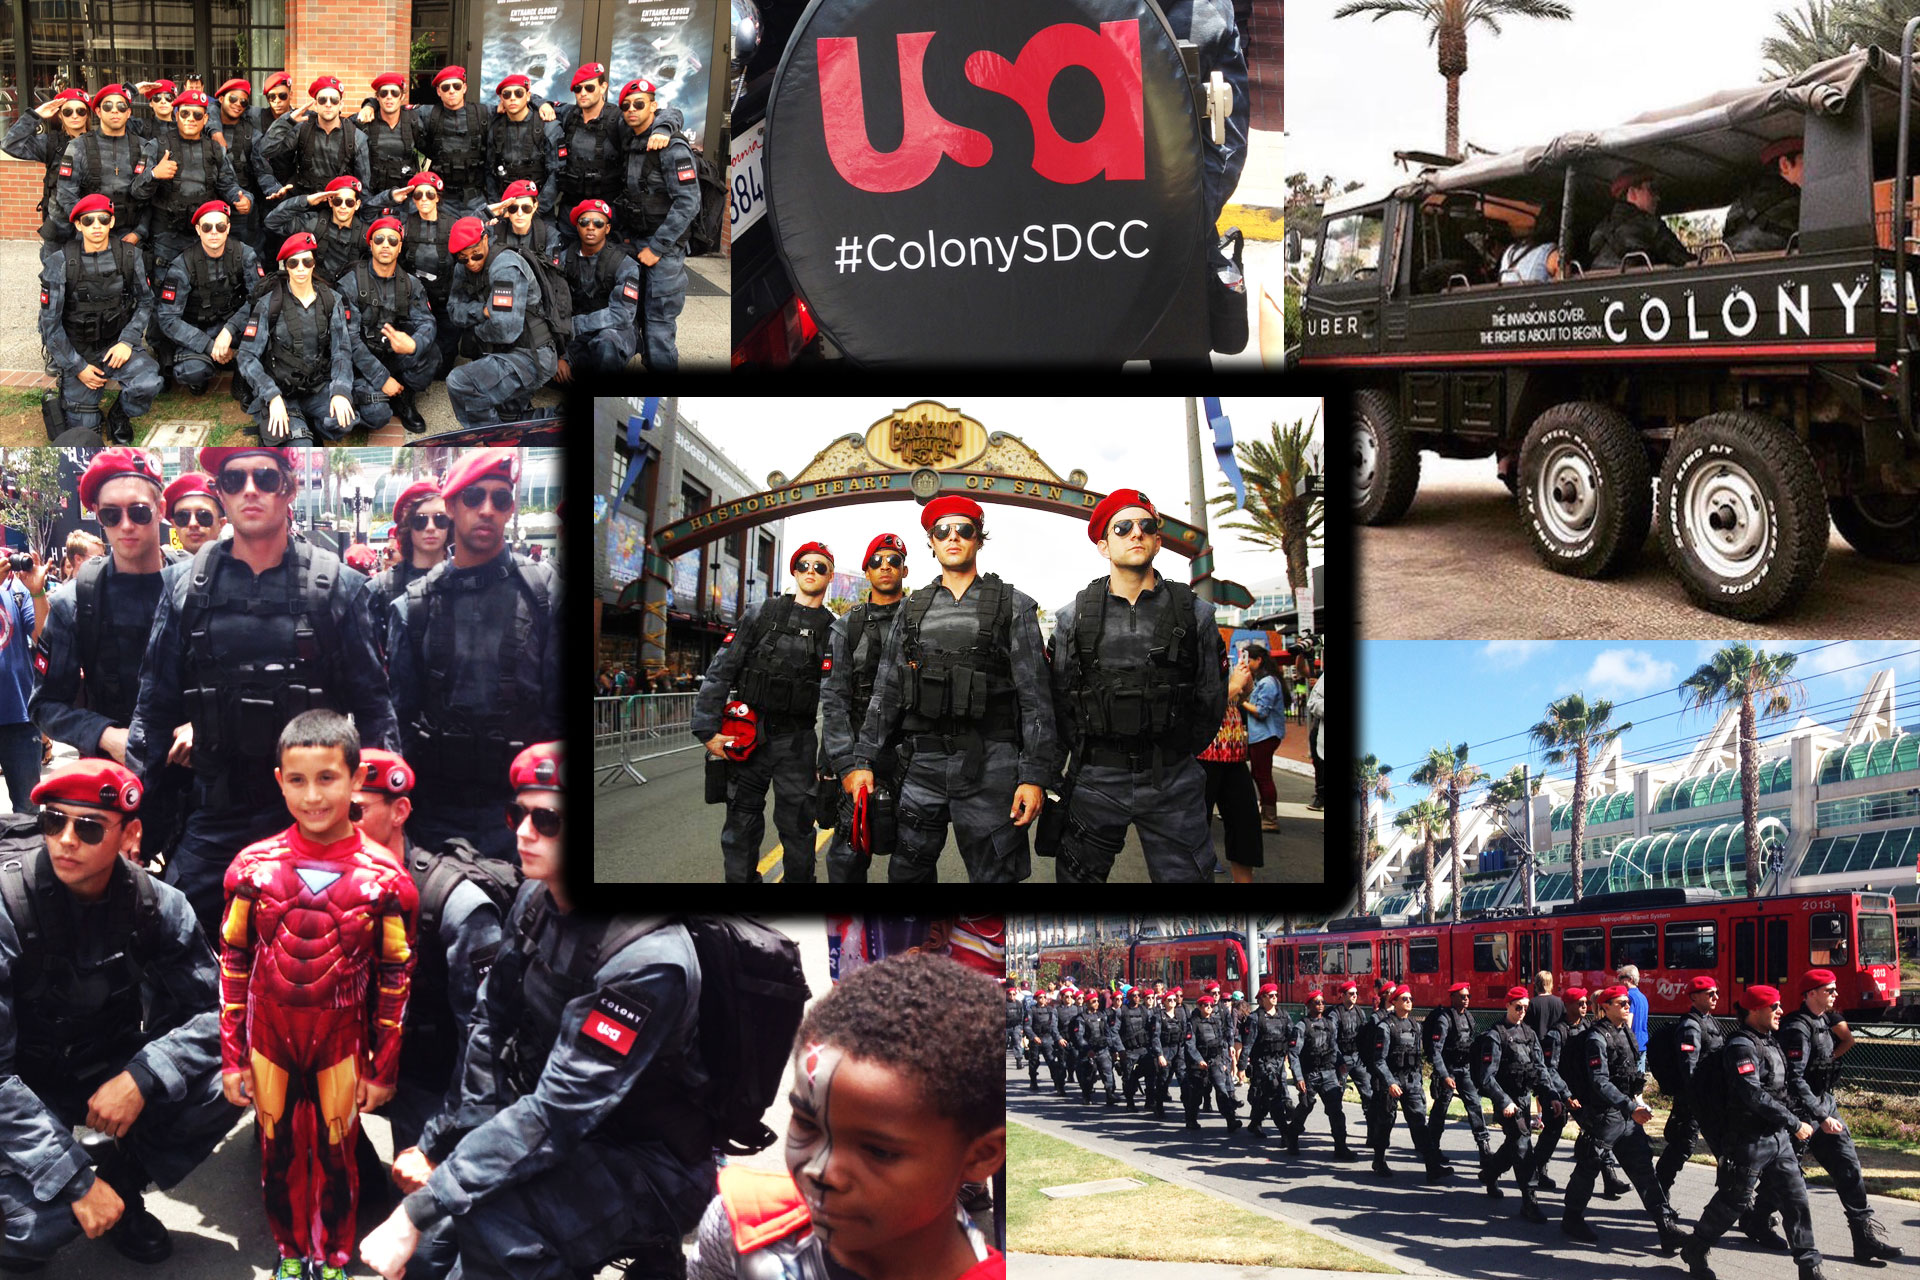 On Tour 24/7 Character Actors representing USA's The Colony at 2015 Comic Con in San Diego, CA.